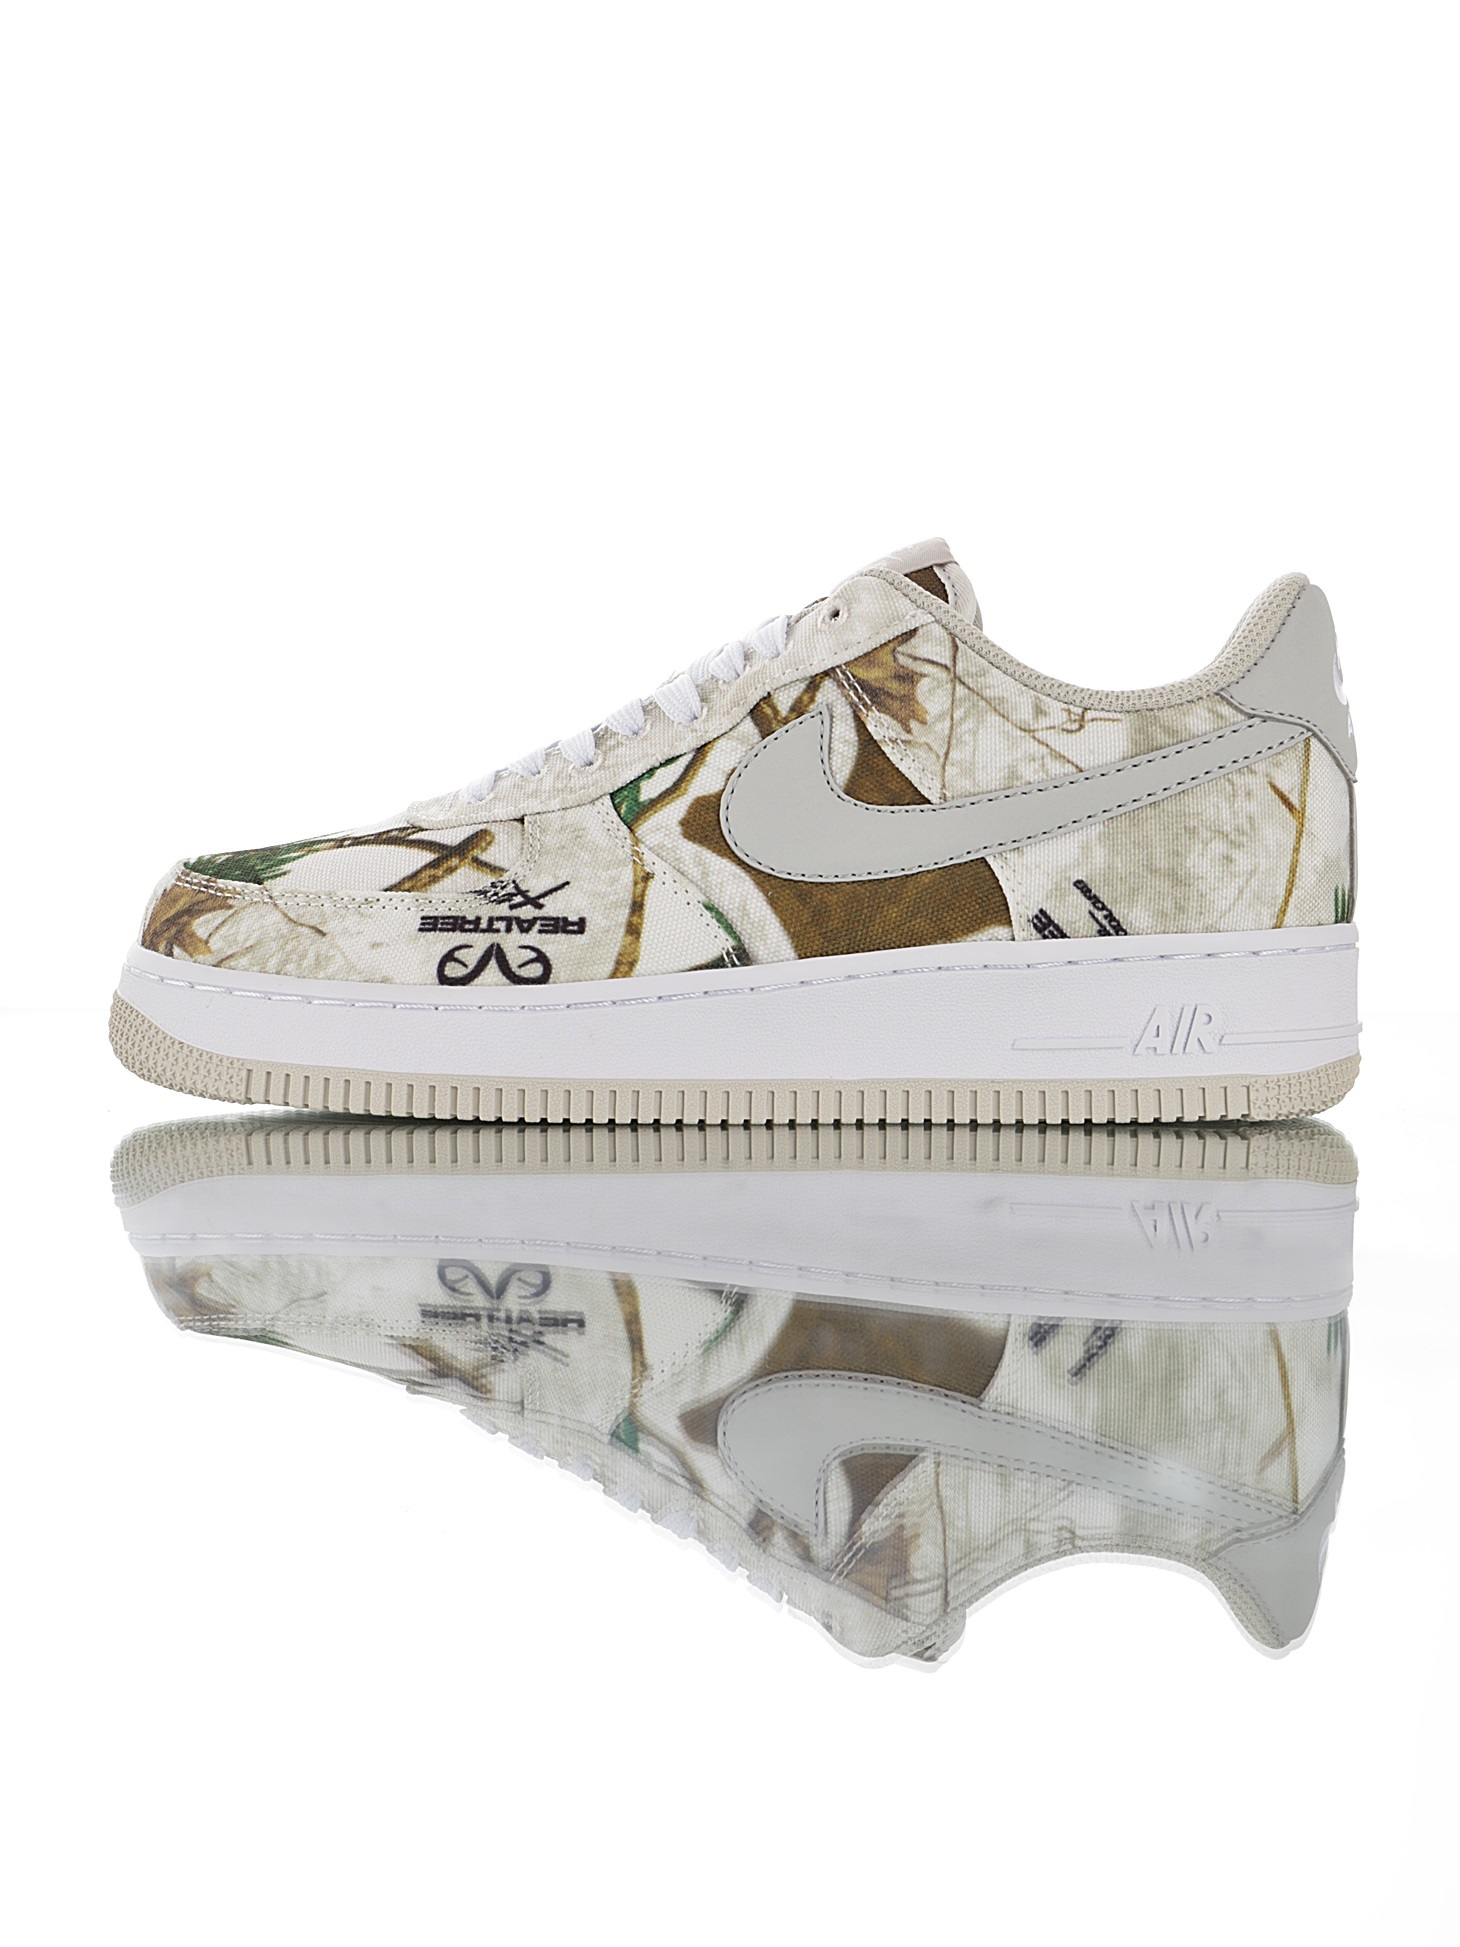 "Realtree Outdoors x Nike Air Force 1 07 LV8 ""Reflective Camo""空军一号经典低帮百"